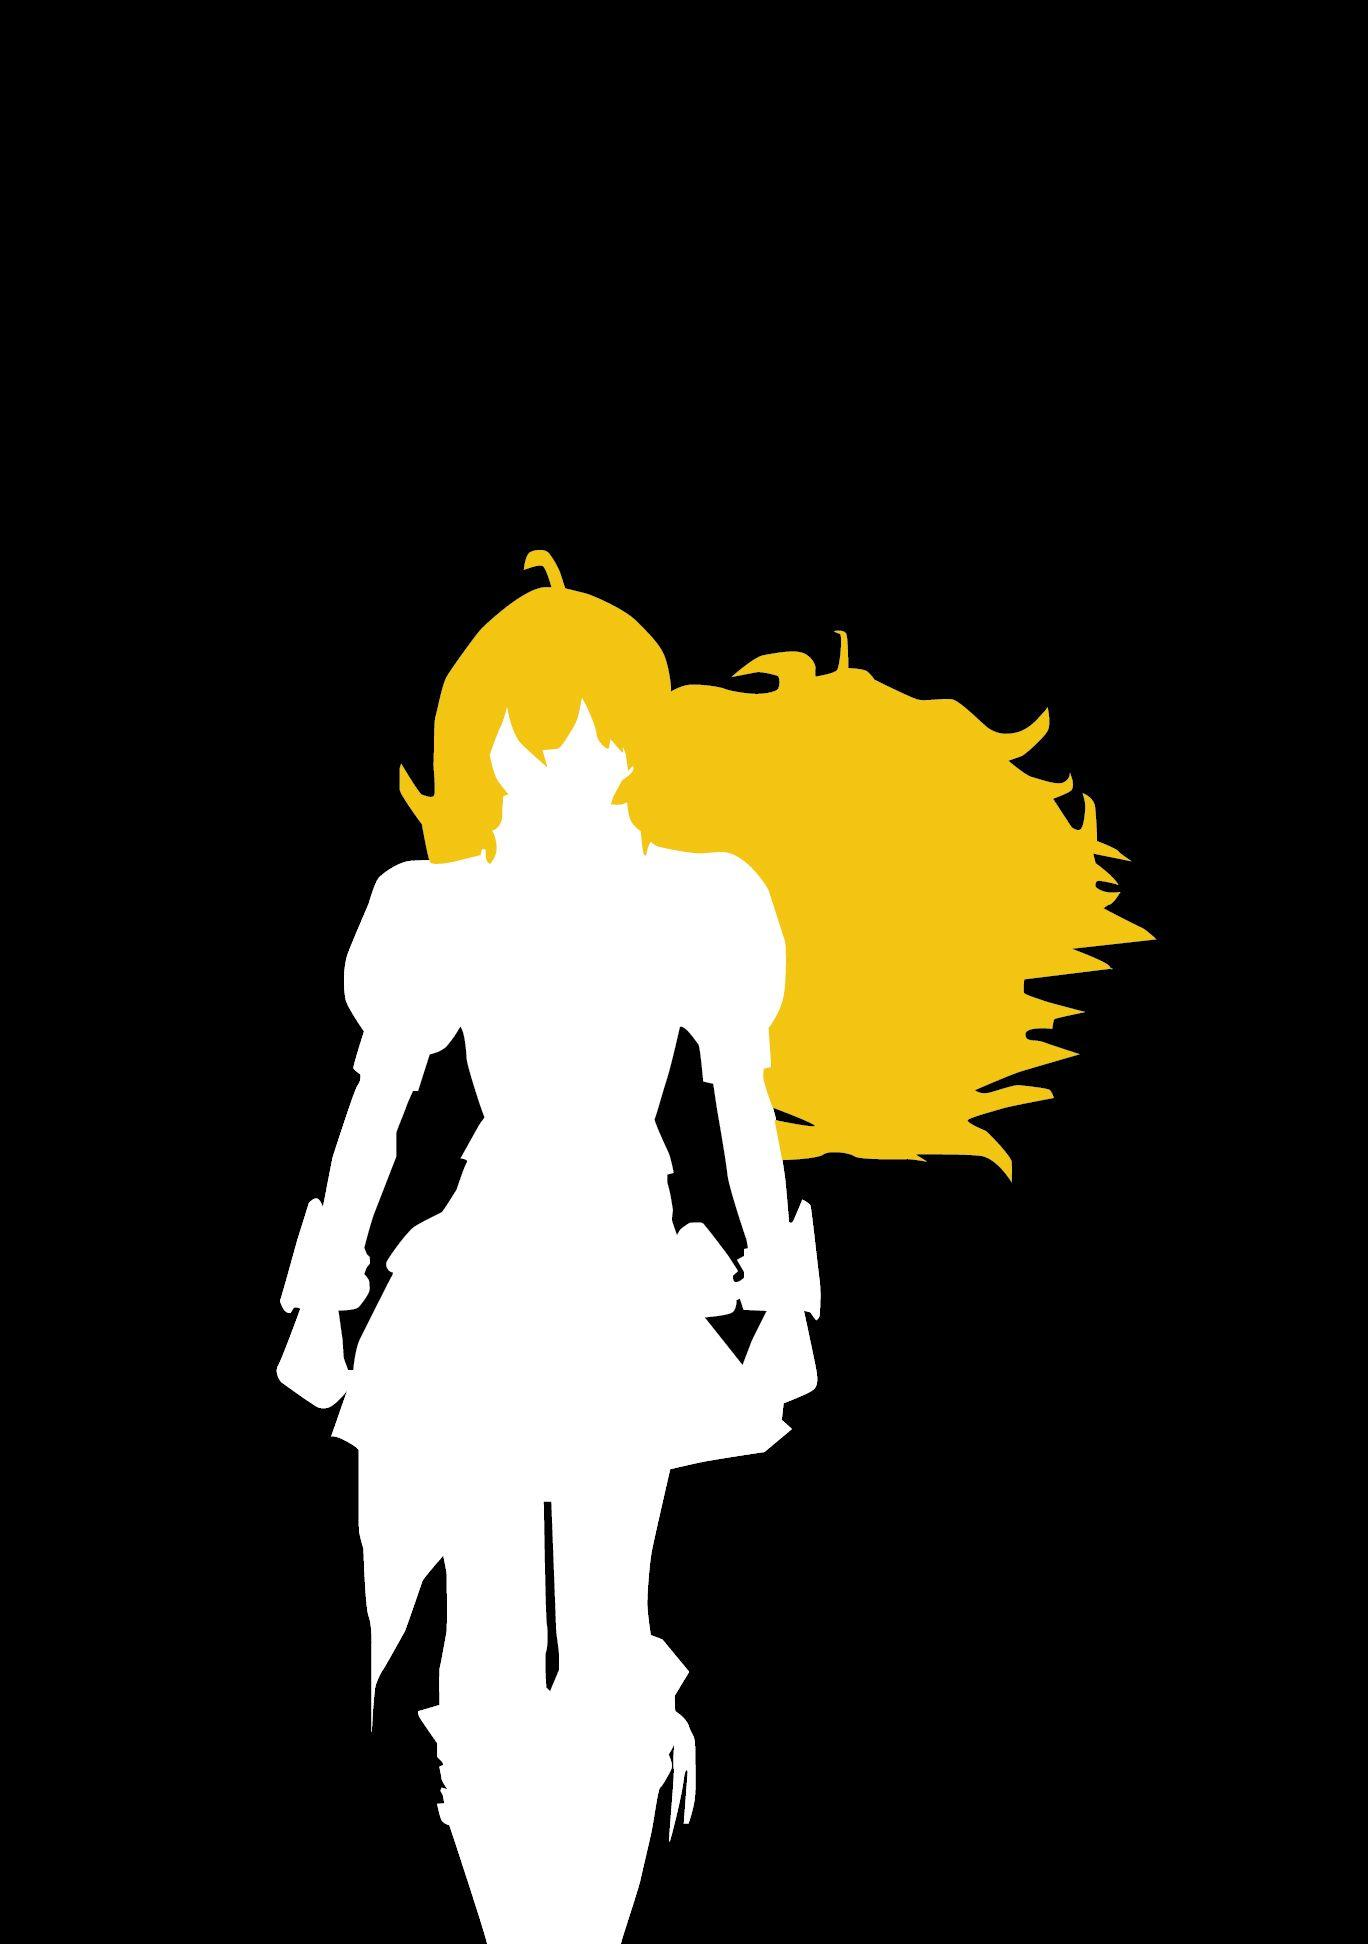 RWBY Yang Xiao Long by hellghast12 on DeviantArt